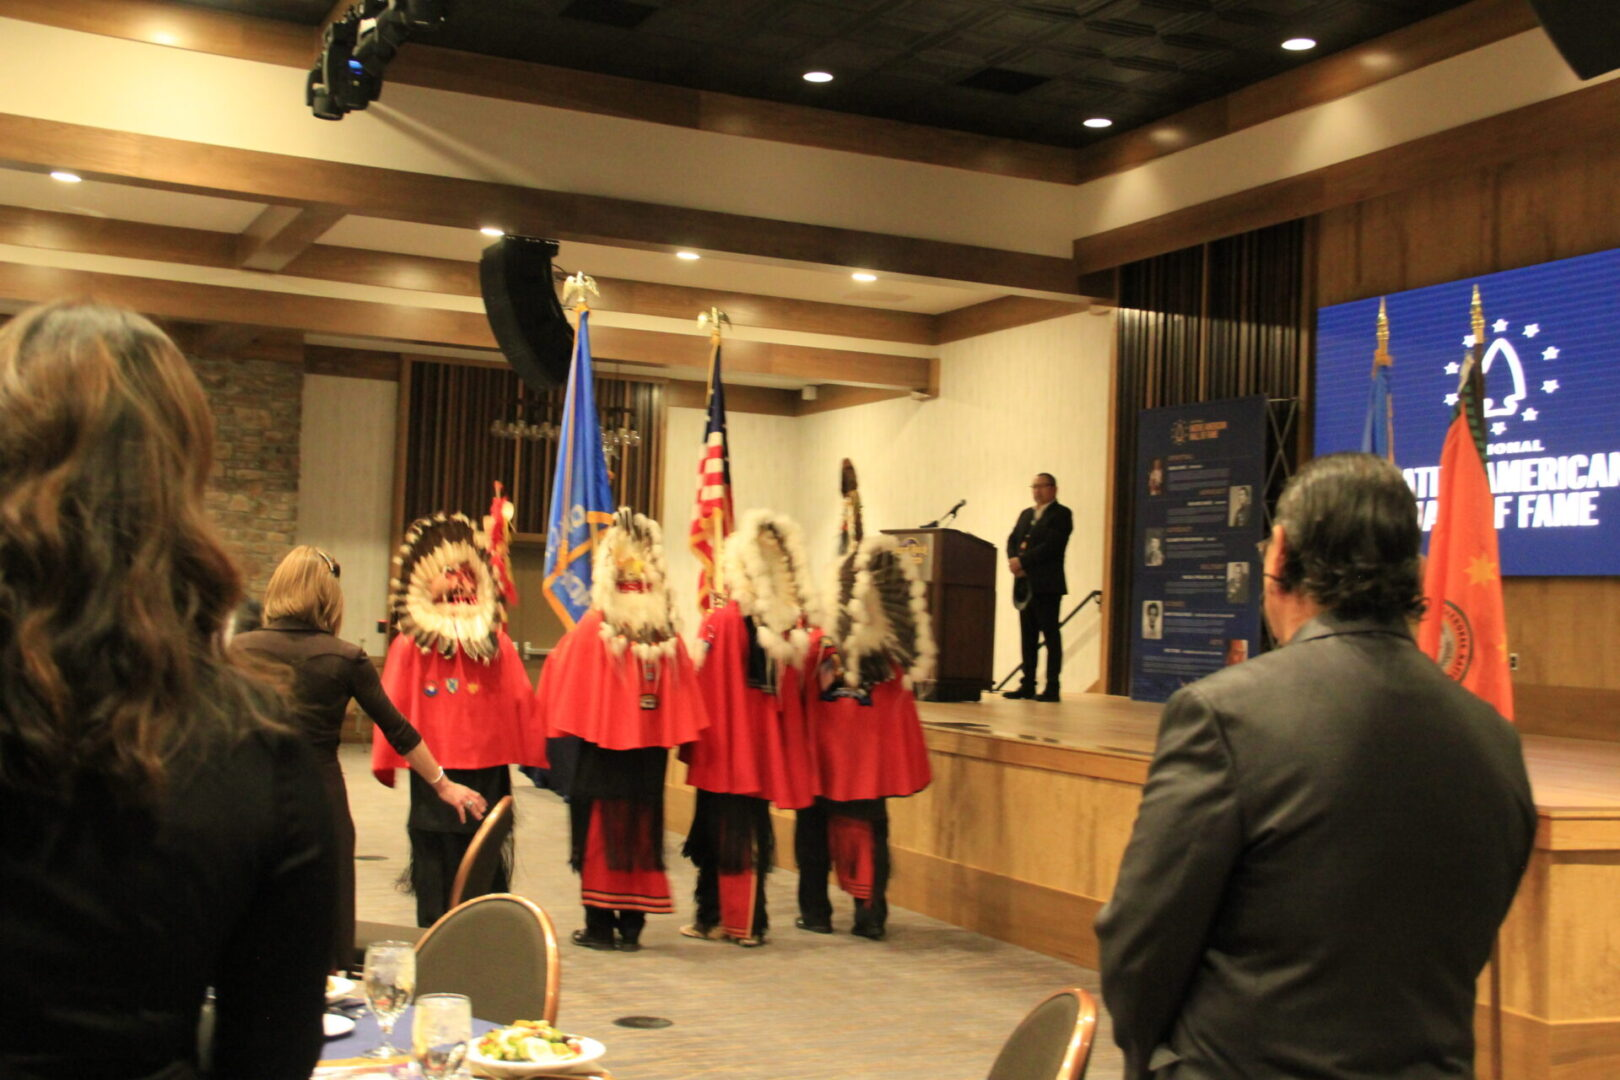 Black Leggings Society present the colors at the Native American Hall of fame ceremony